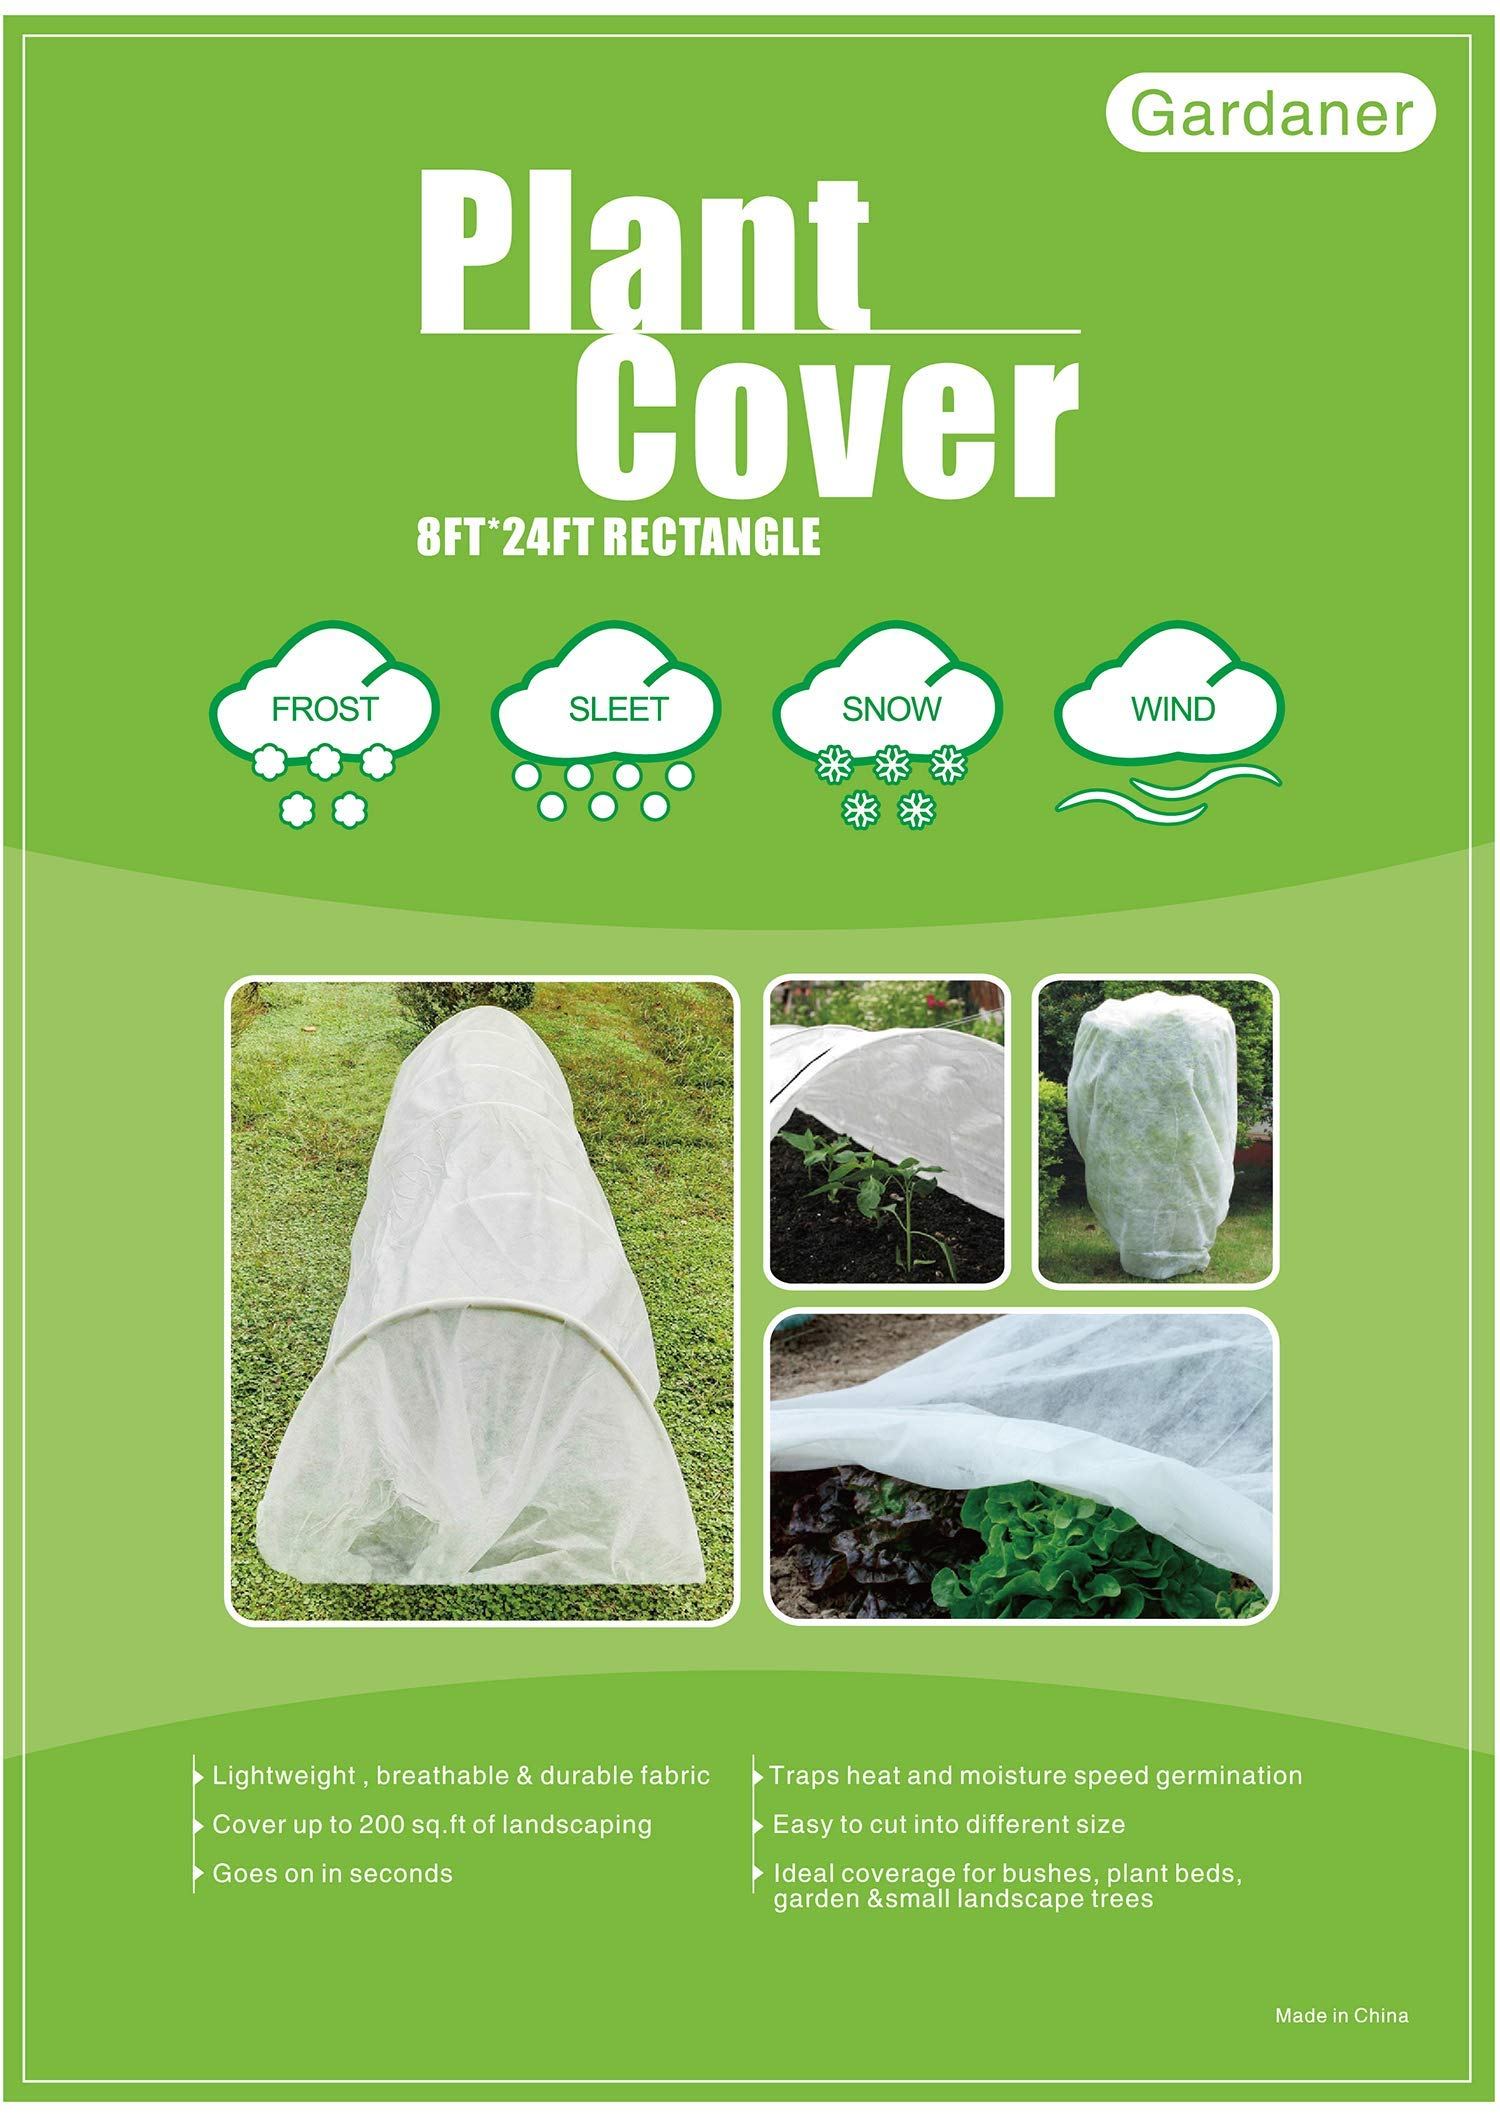 Gardaner Plant Covers Freeze Protection & Plant Blanket Fabric 8Ft x 24Ft Rectangle Plant Cover for Cold Weather